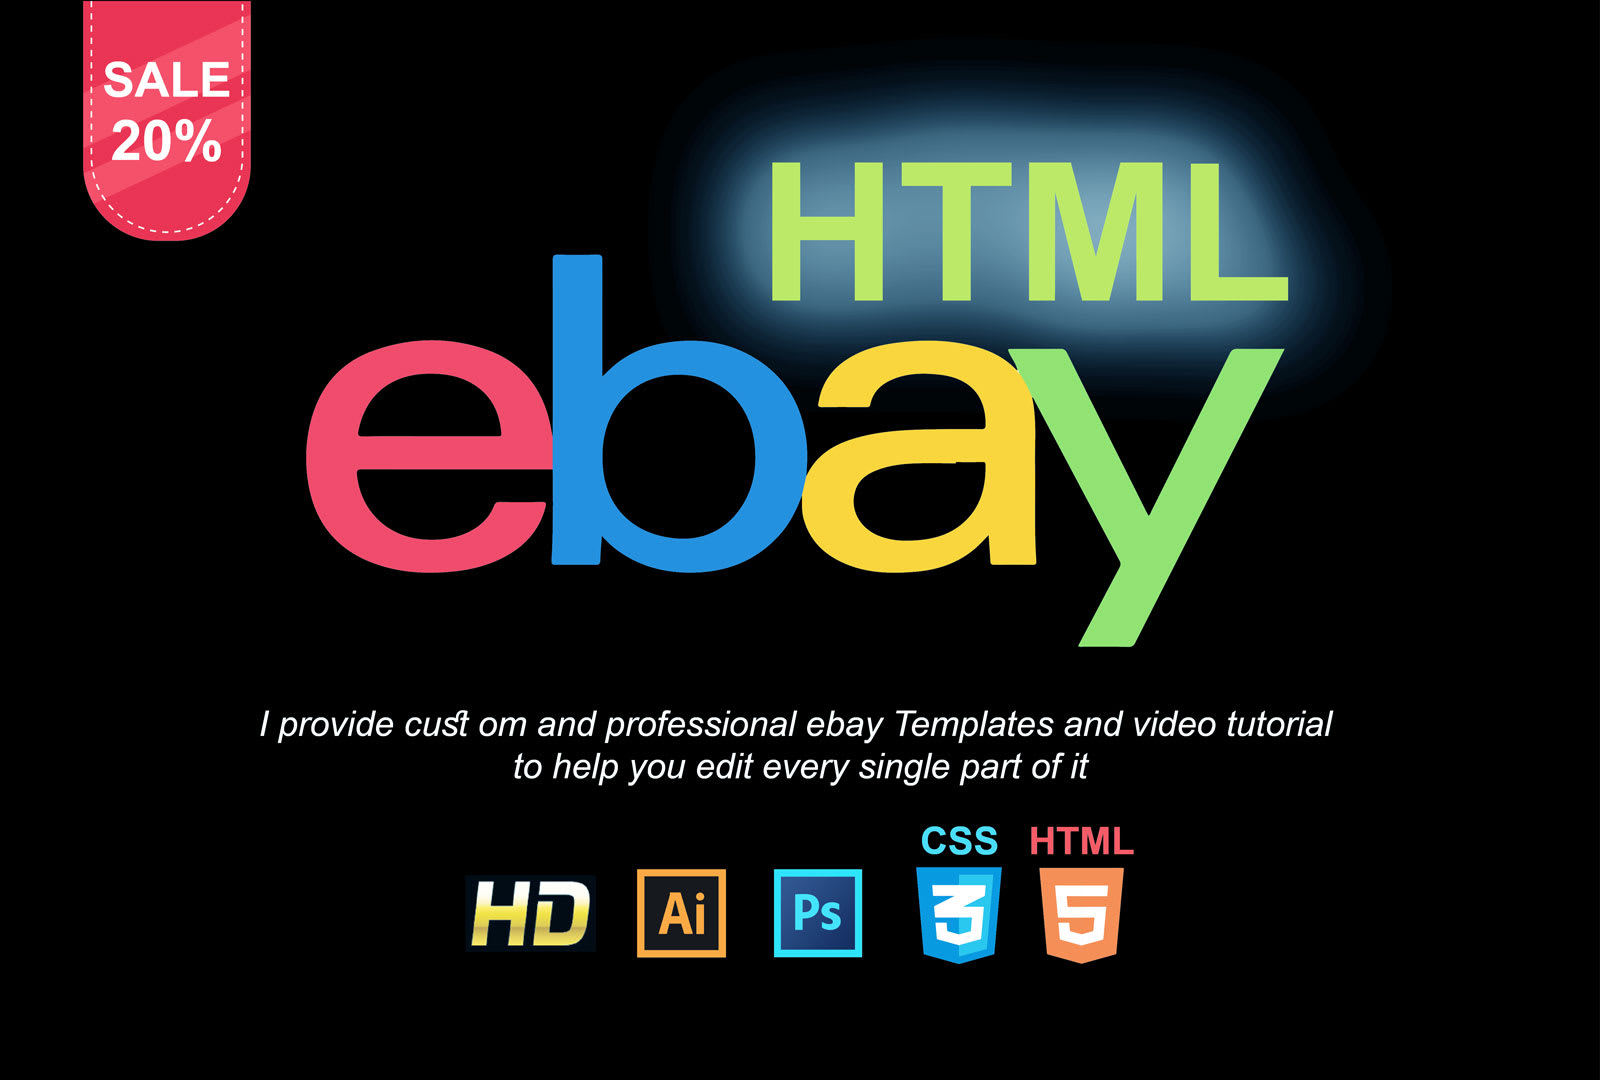 Create Ebay Html Template For Product By Freeman128